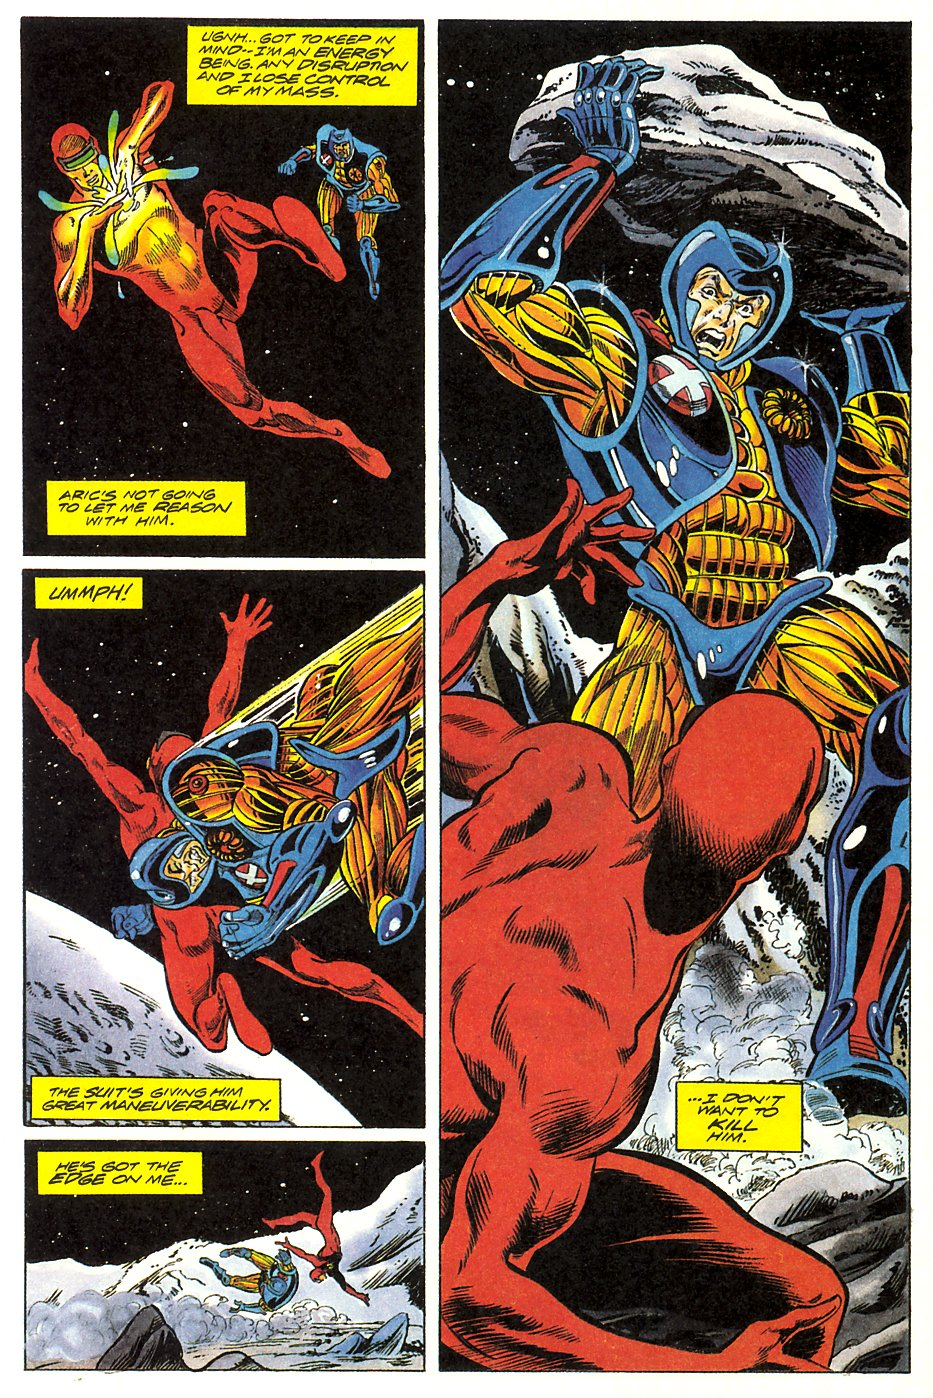 Read online Solar, Man of the Atom comic -  Issue #17 - 16